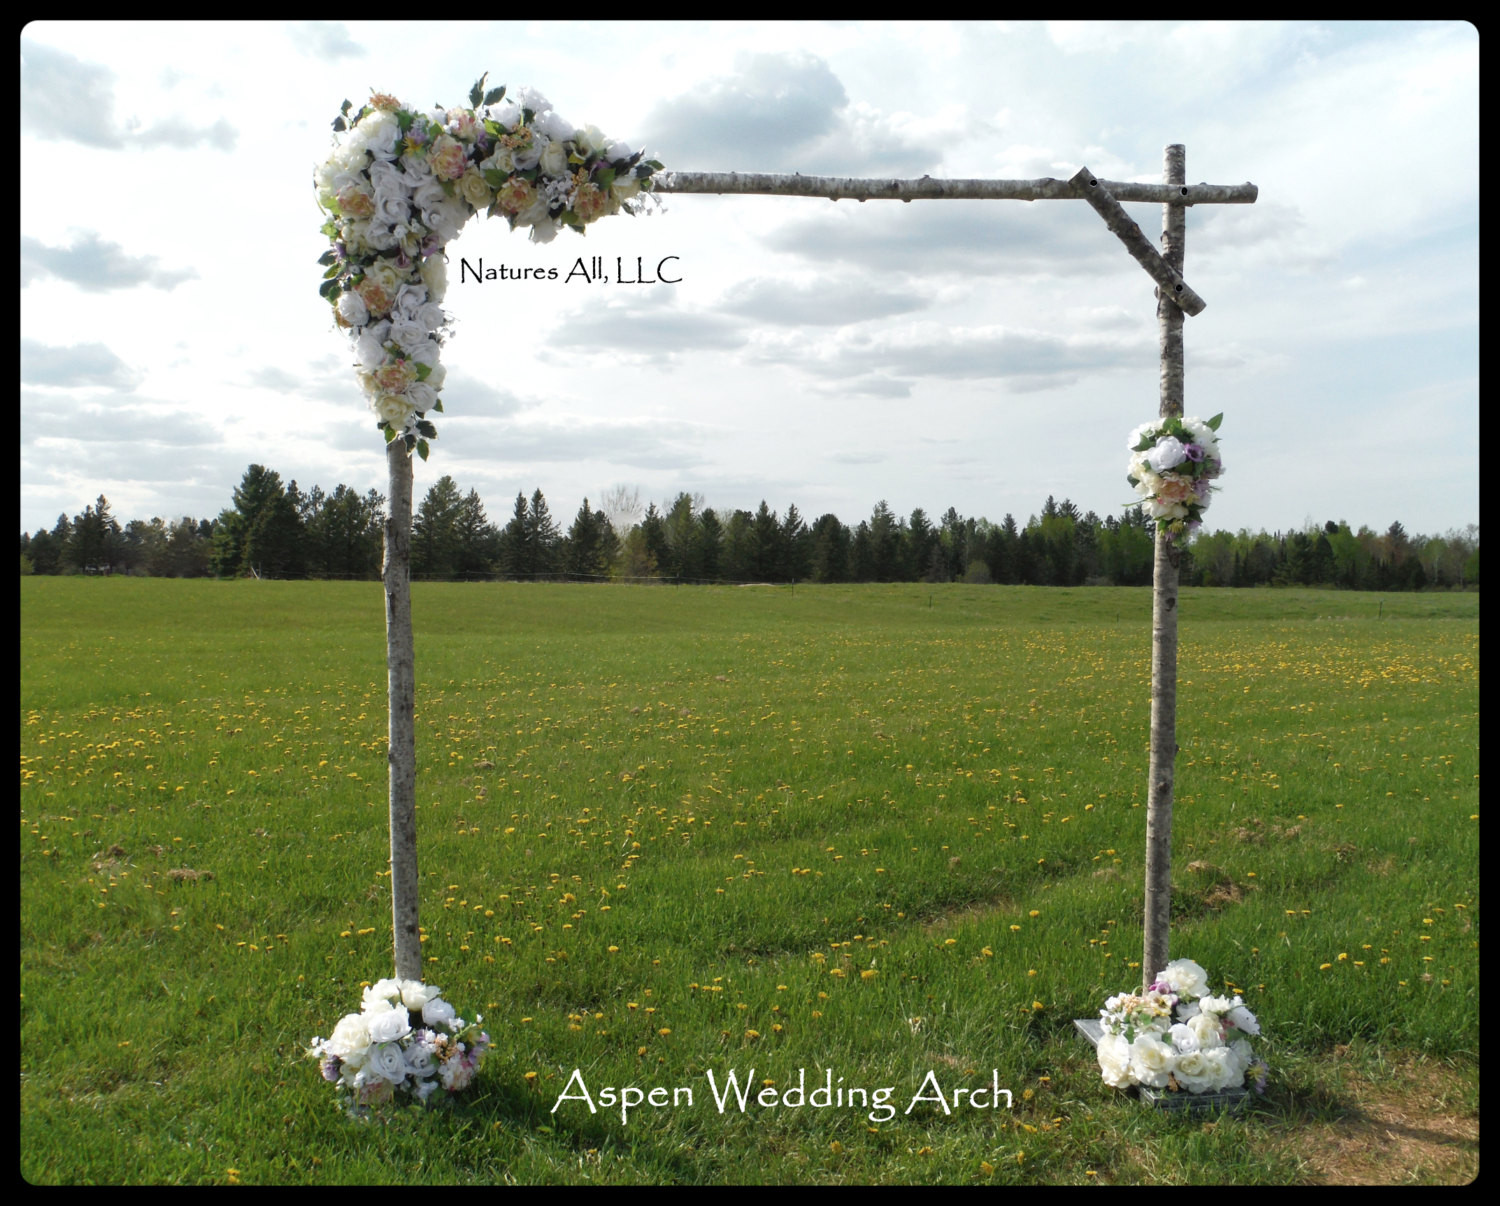 Best ideas about DIY Wedding Arch Kits . Save or Pin Aspen Wedding Arch Aspen Arbor plete Kit For Indoor Or Now.